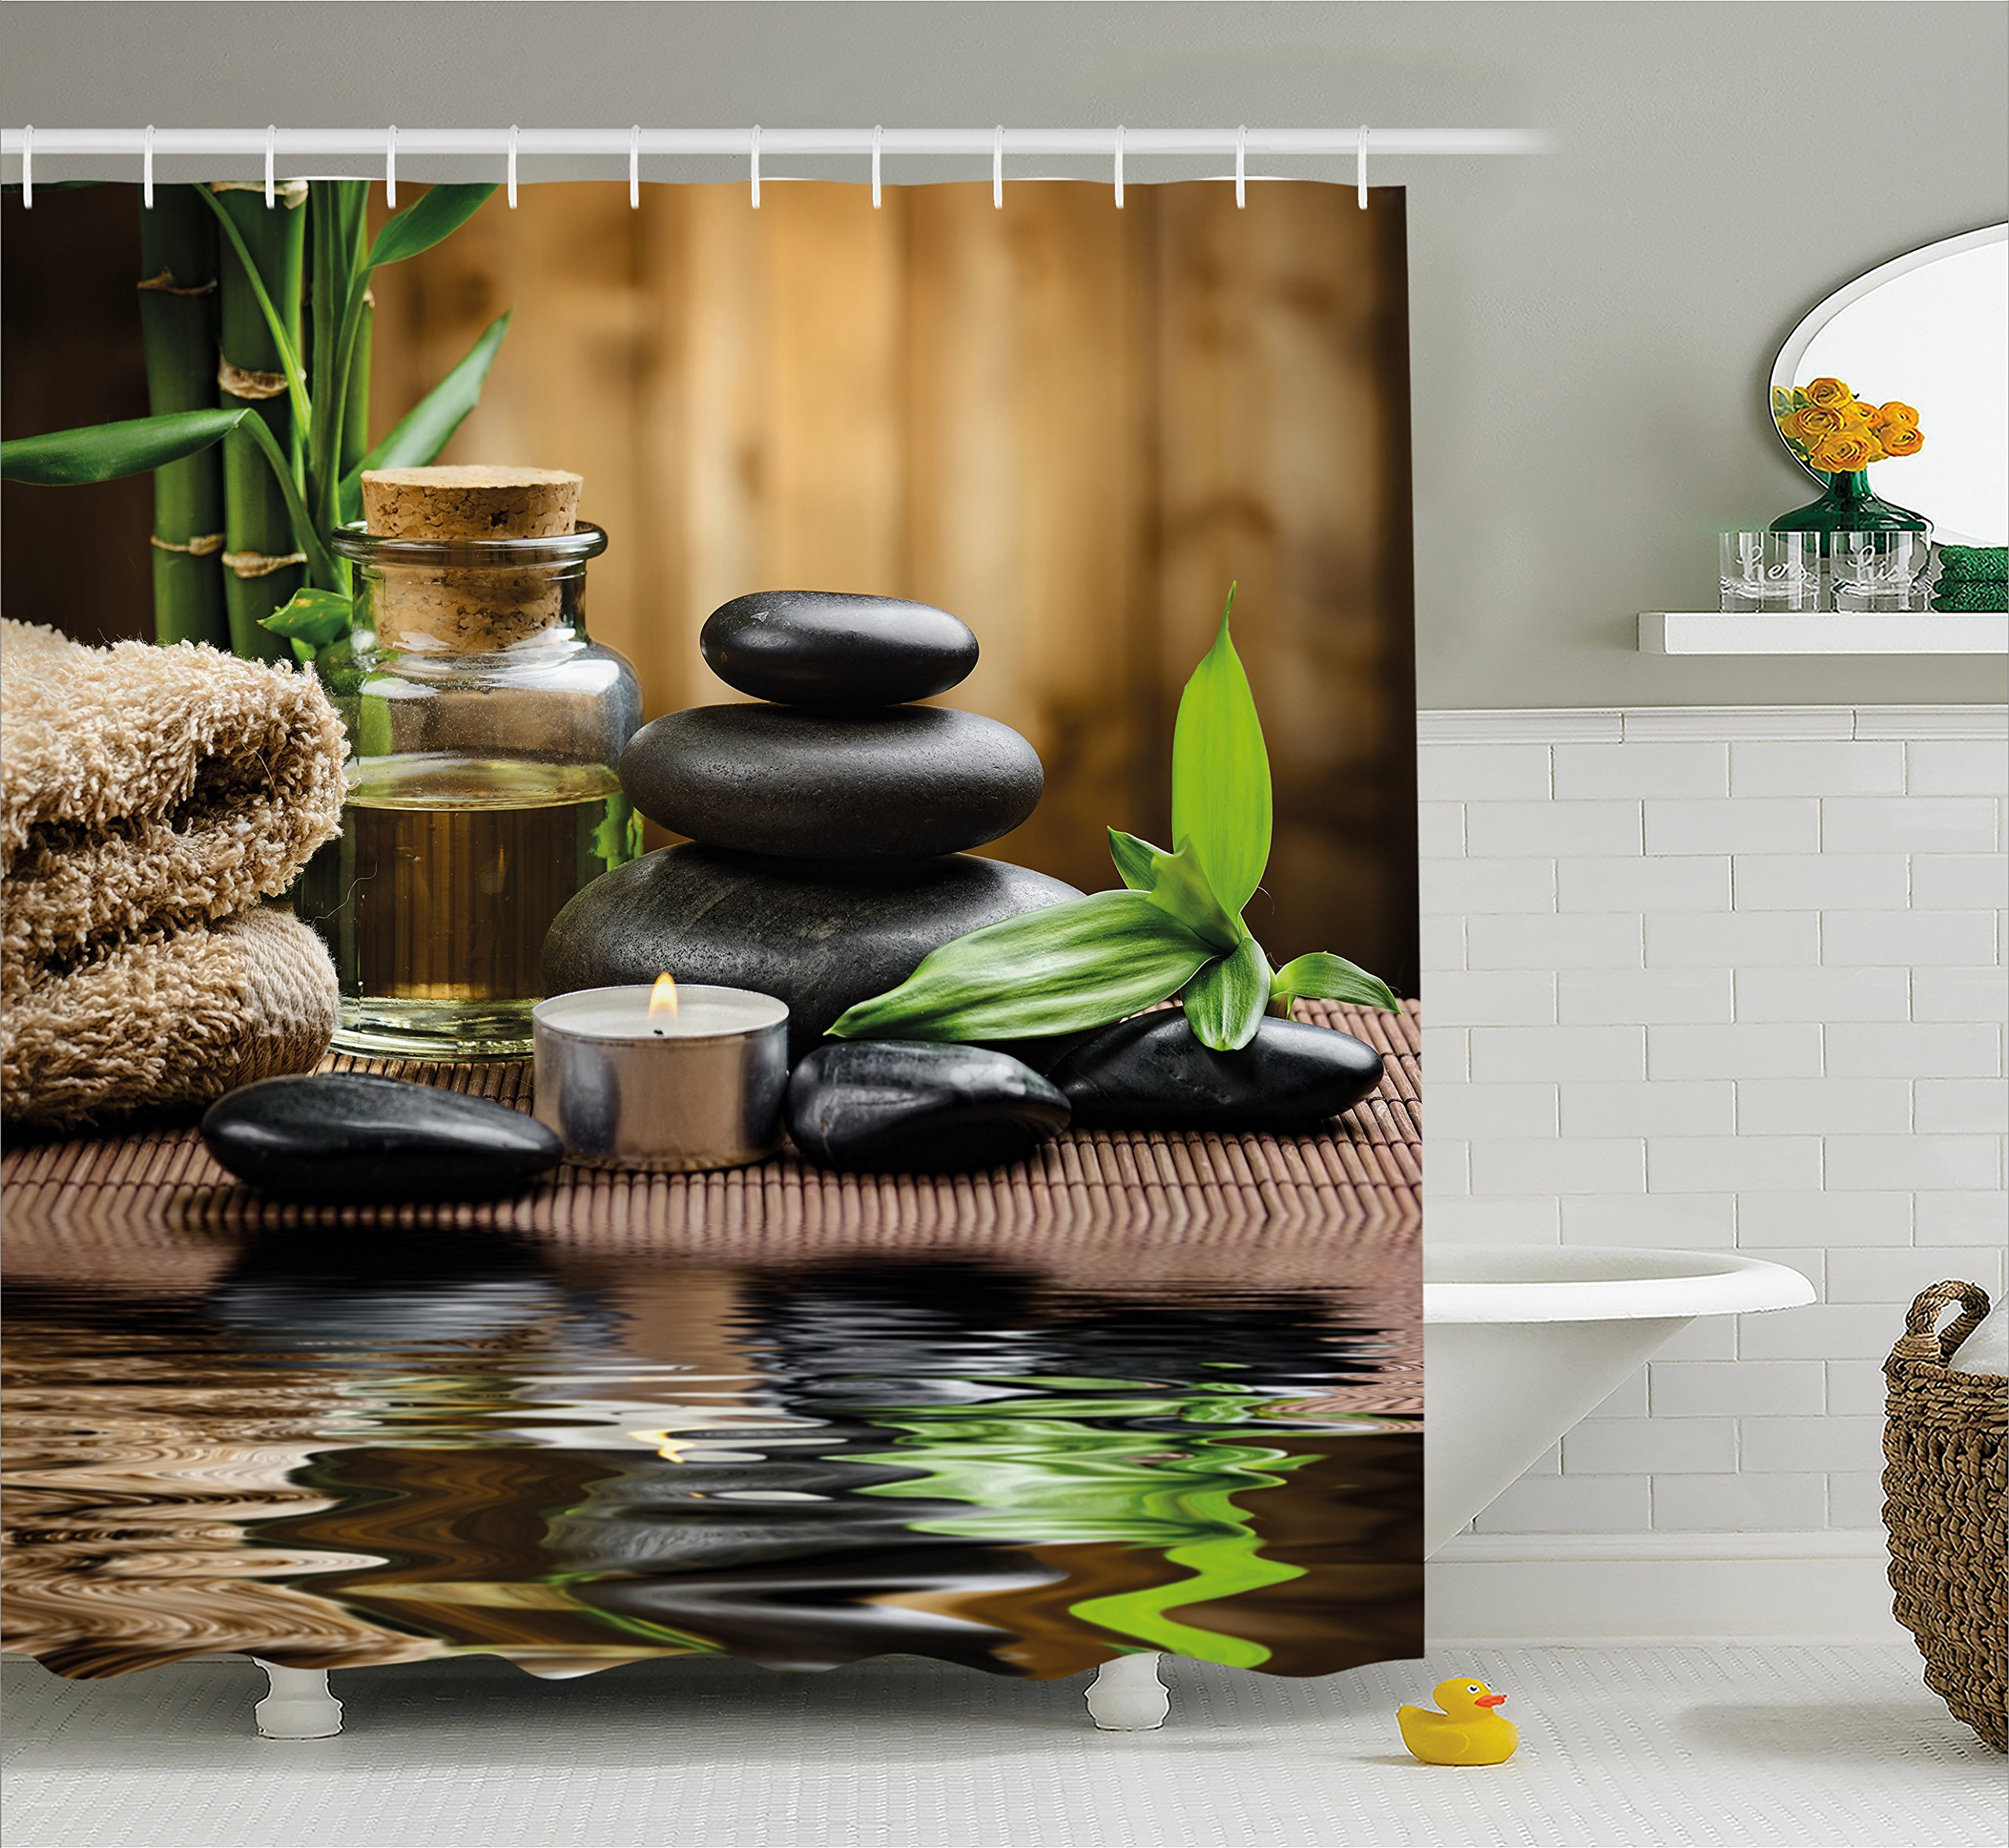 Ambesonne Spa Decor Shower Curtain, Asian Zen Massage Stone Triplets with Herbal Oil and Scent Candles, Fabric Bathroom Decor Set with Hooks, 84 Inches Extra Long, Sand Brown Green